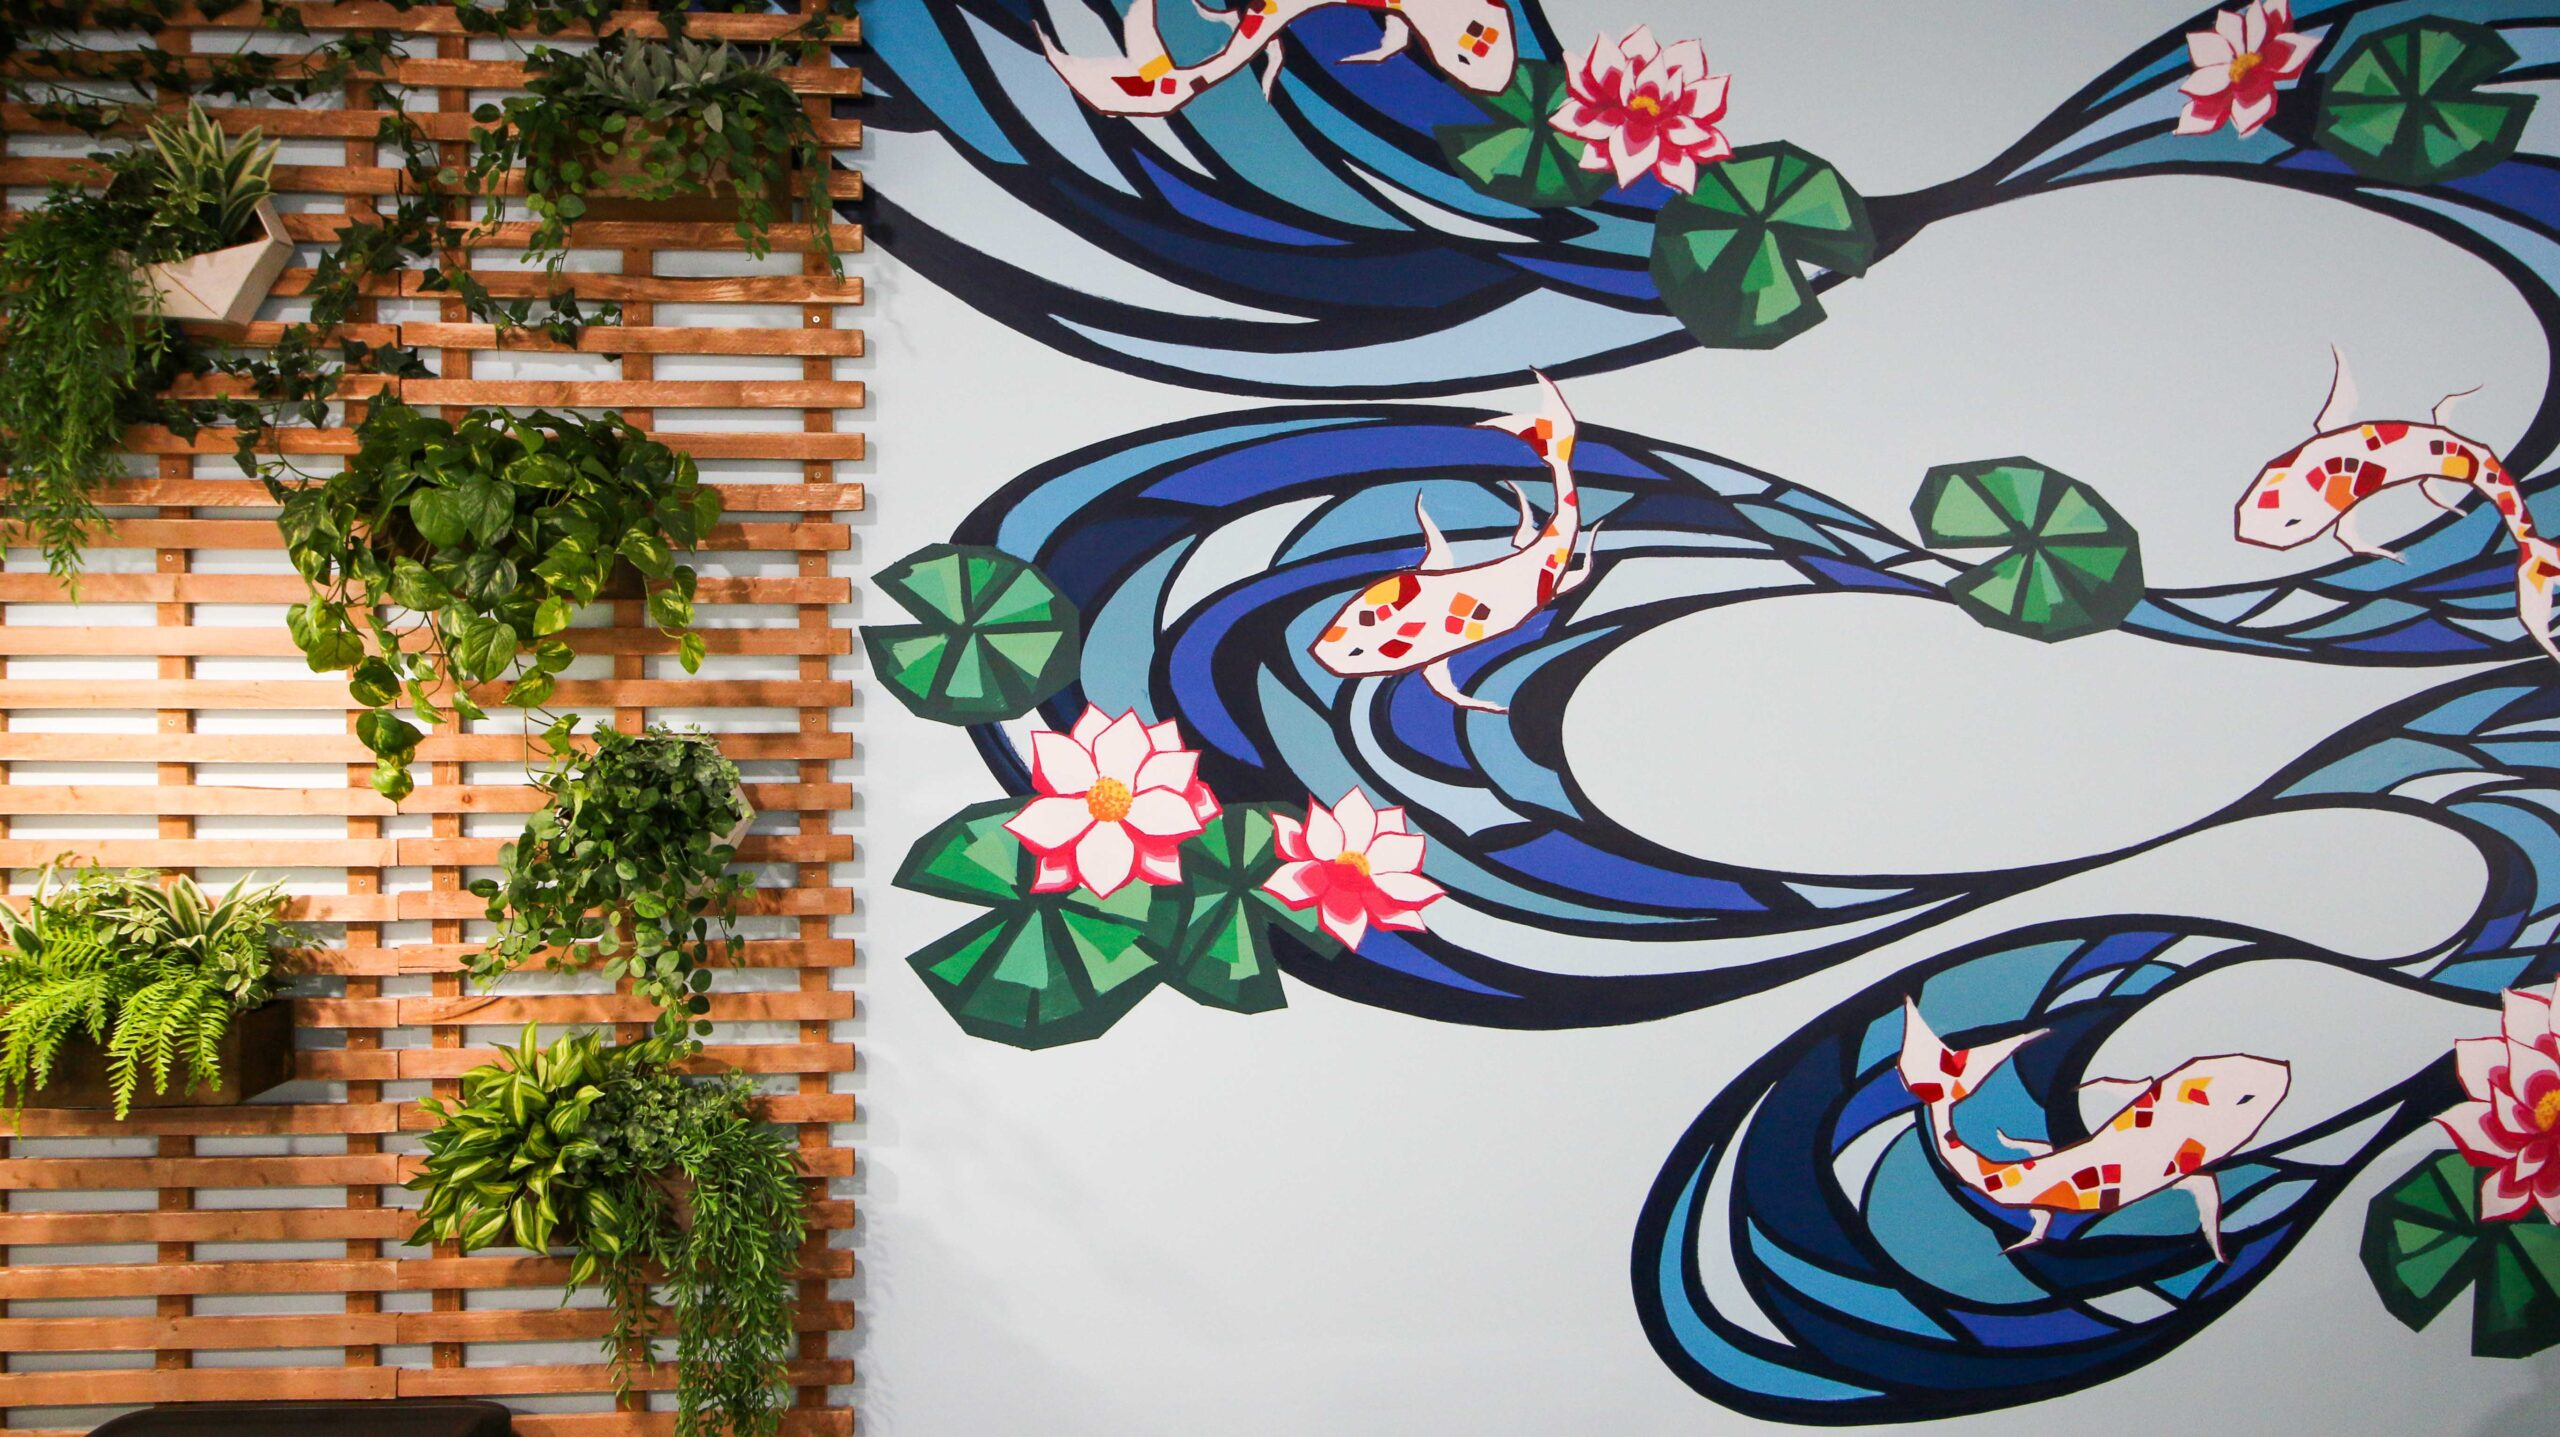 Hand-painted mural of koy fish inside of the Ninja Generation's lounge